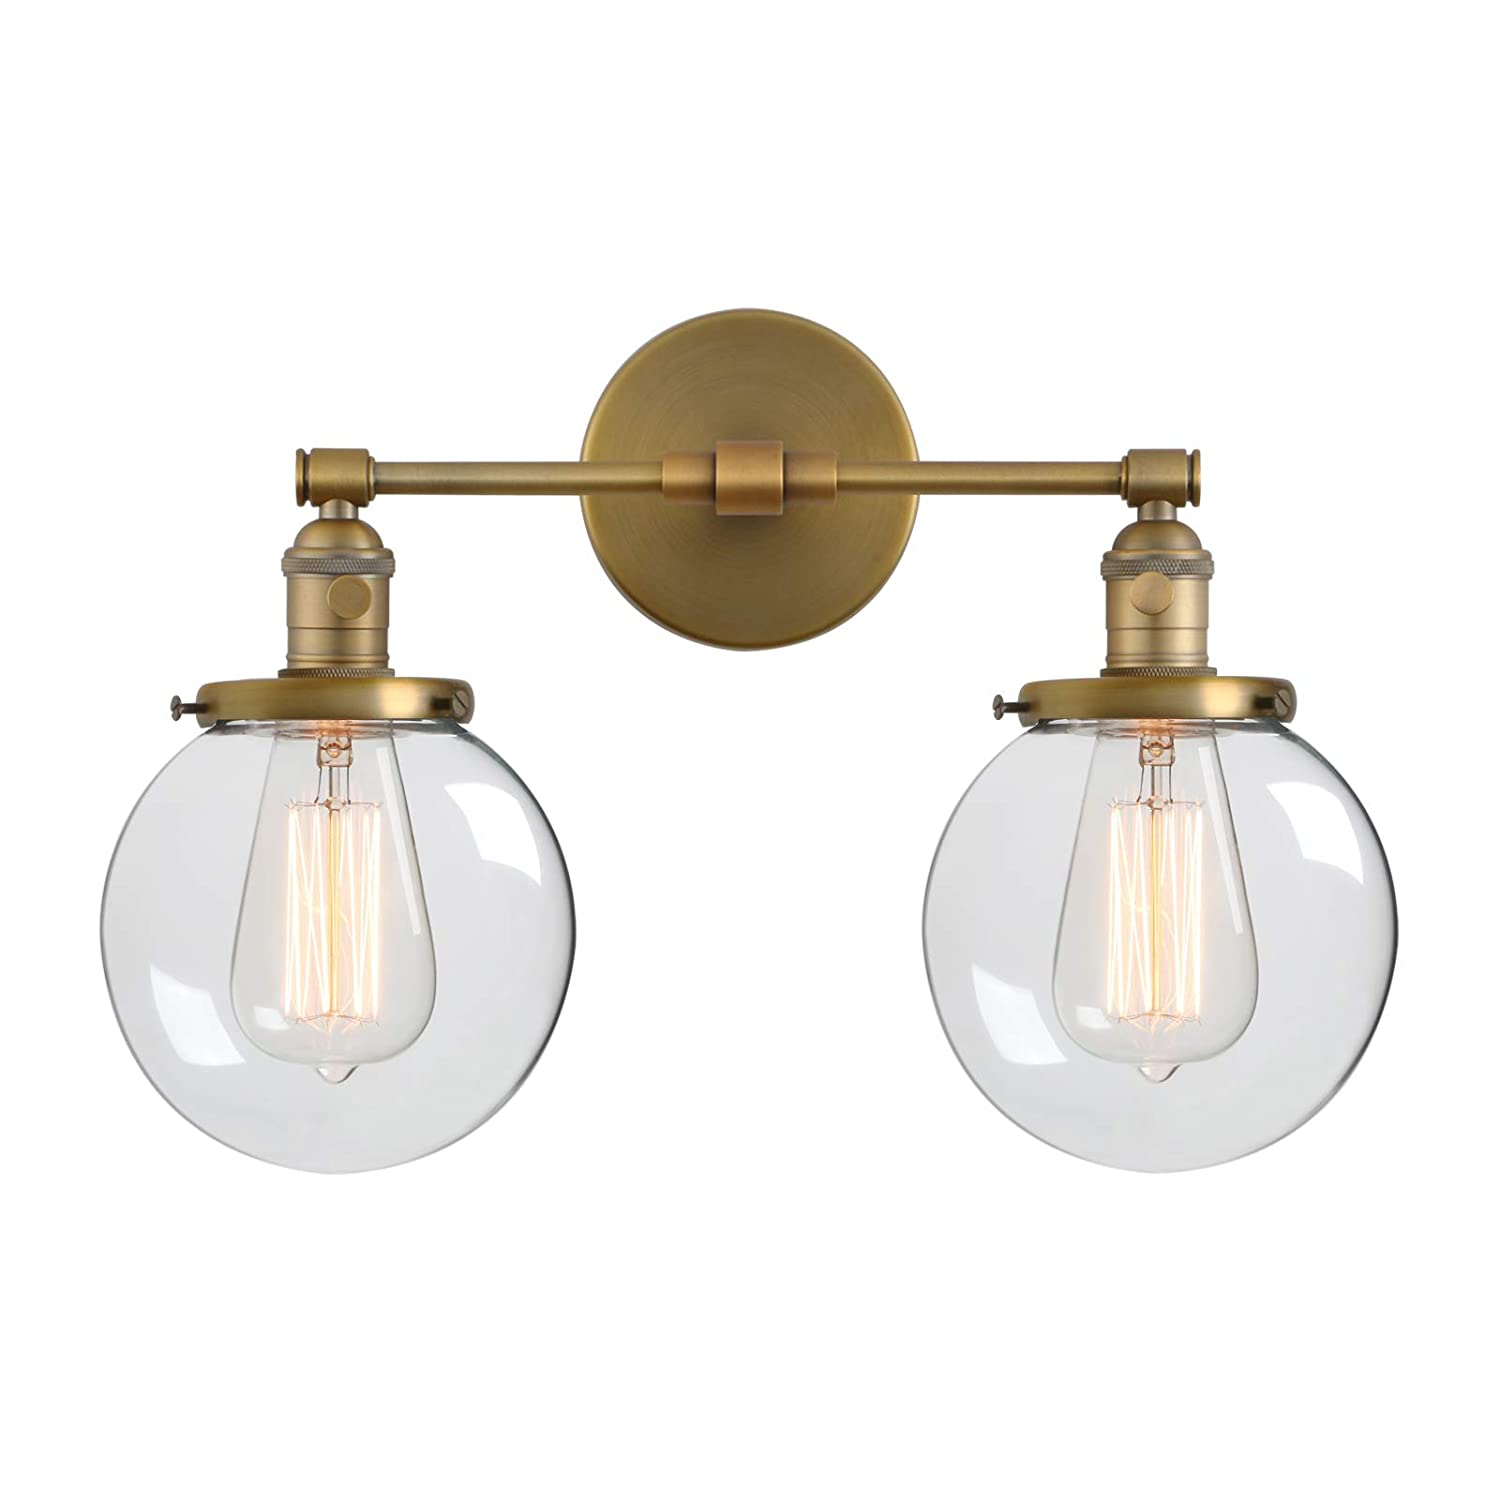 Phansthy double sconce vintage industrial 2 light wall light with 5 9 clear glass canopyantique amazon com